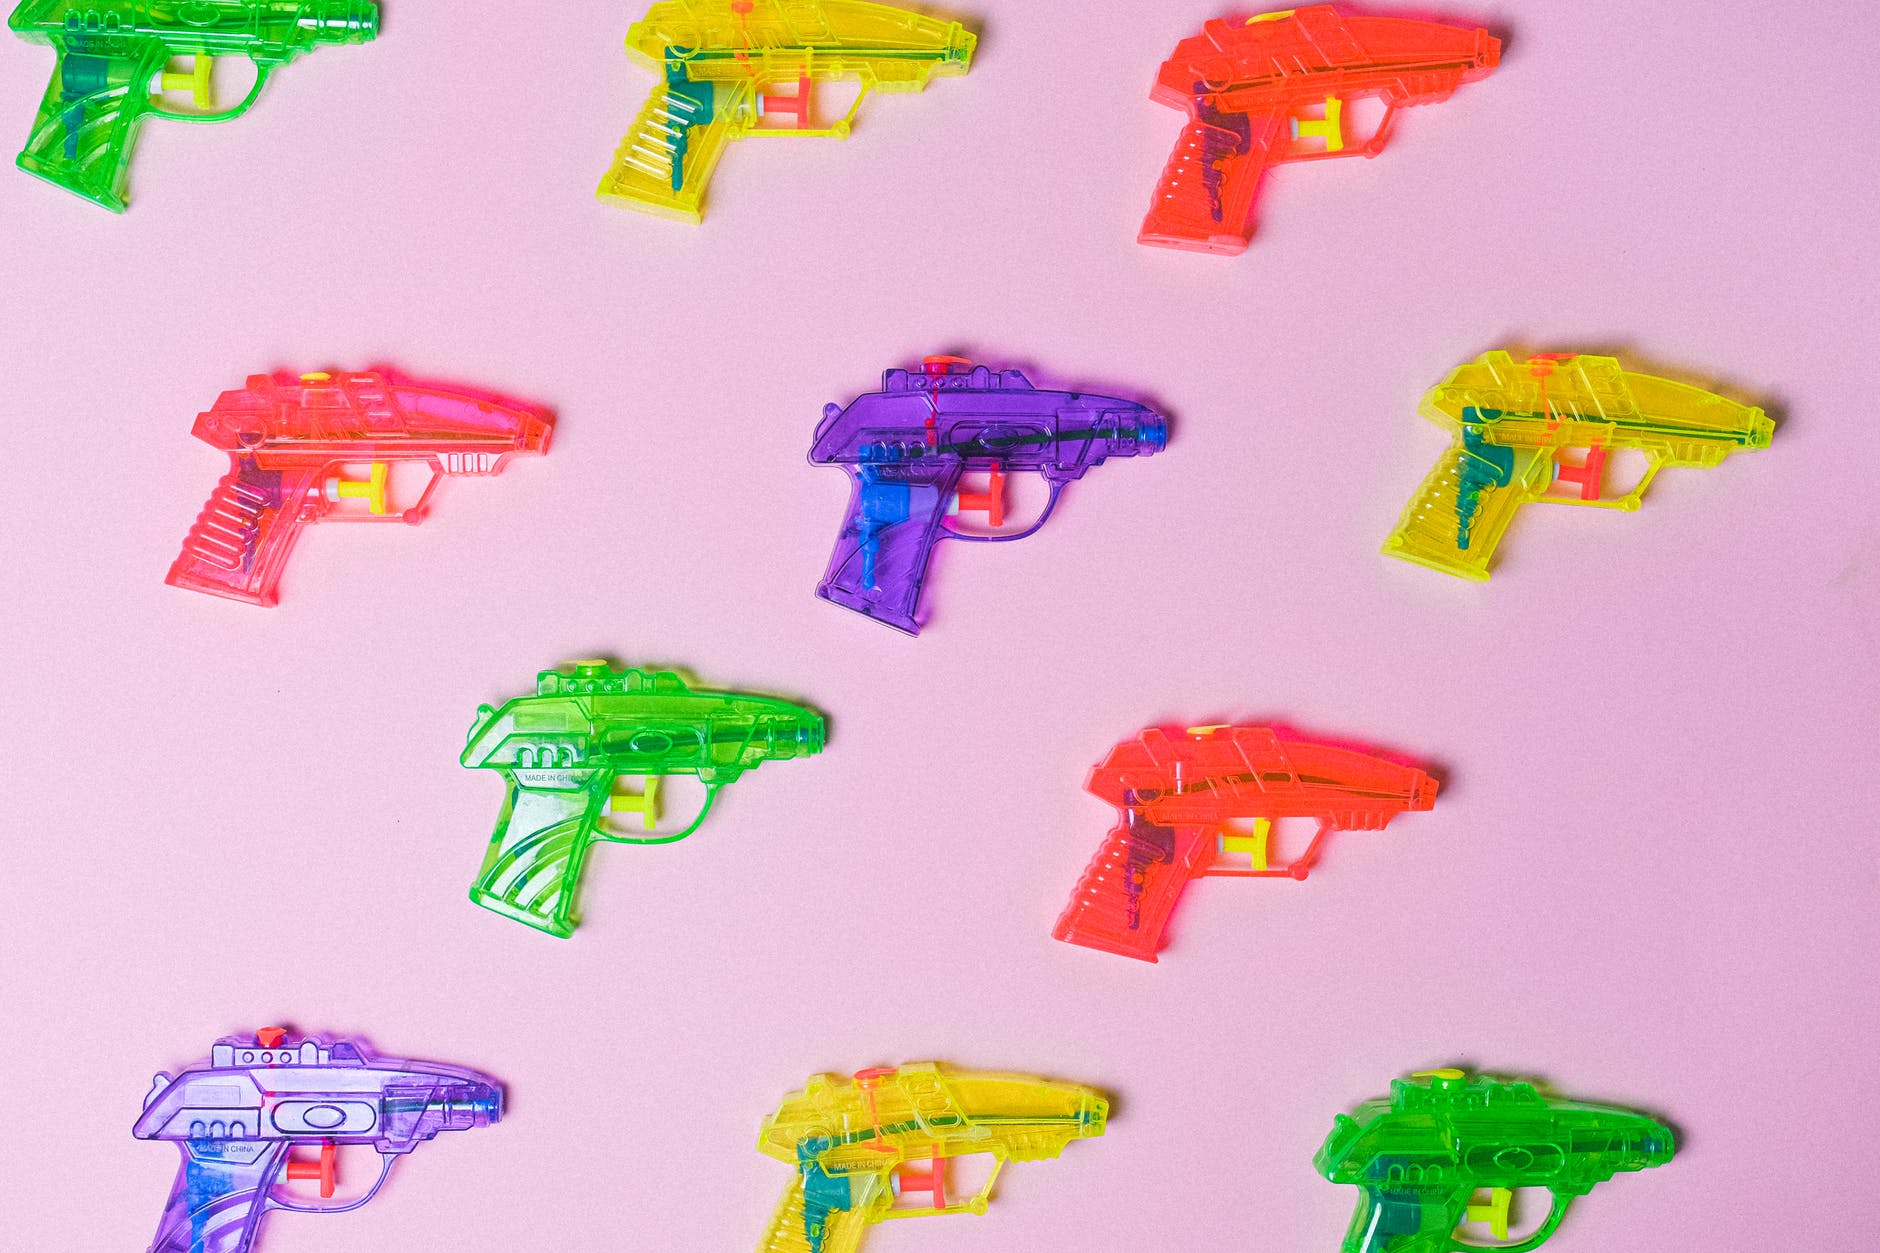 Different types of toy guns for kids